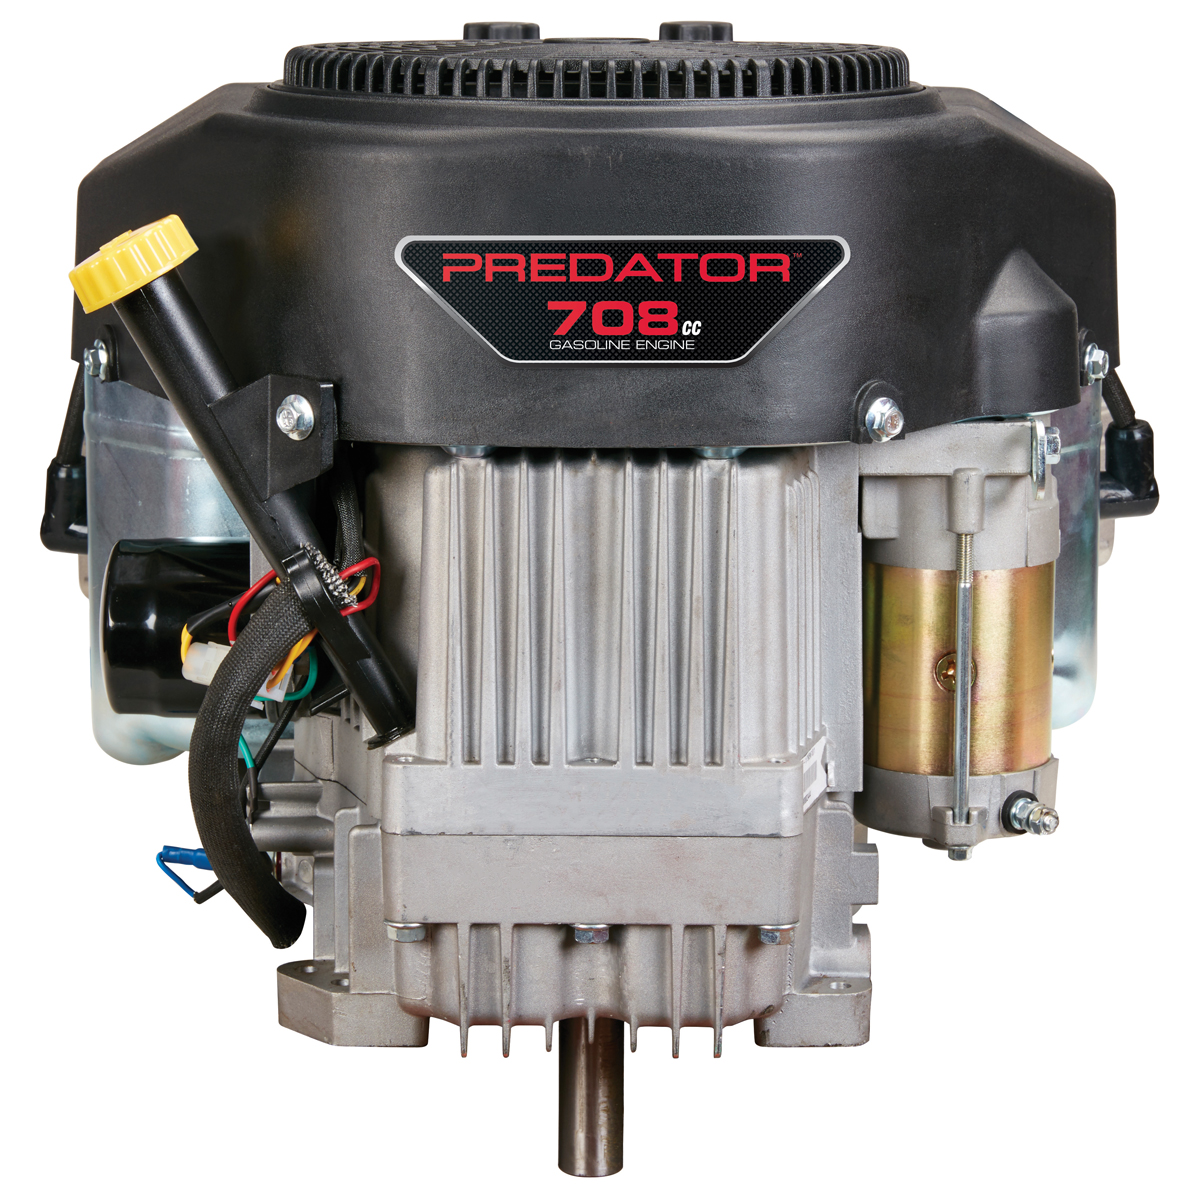 Harbor Freight Gasoline Engines | Zef Jam